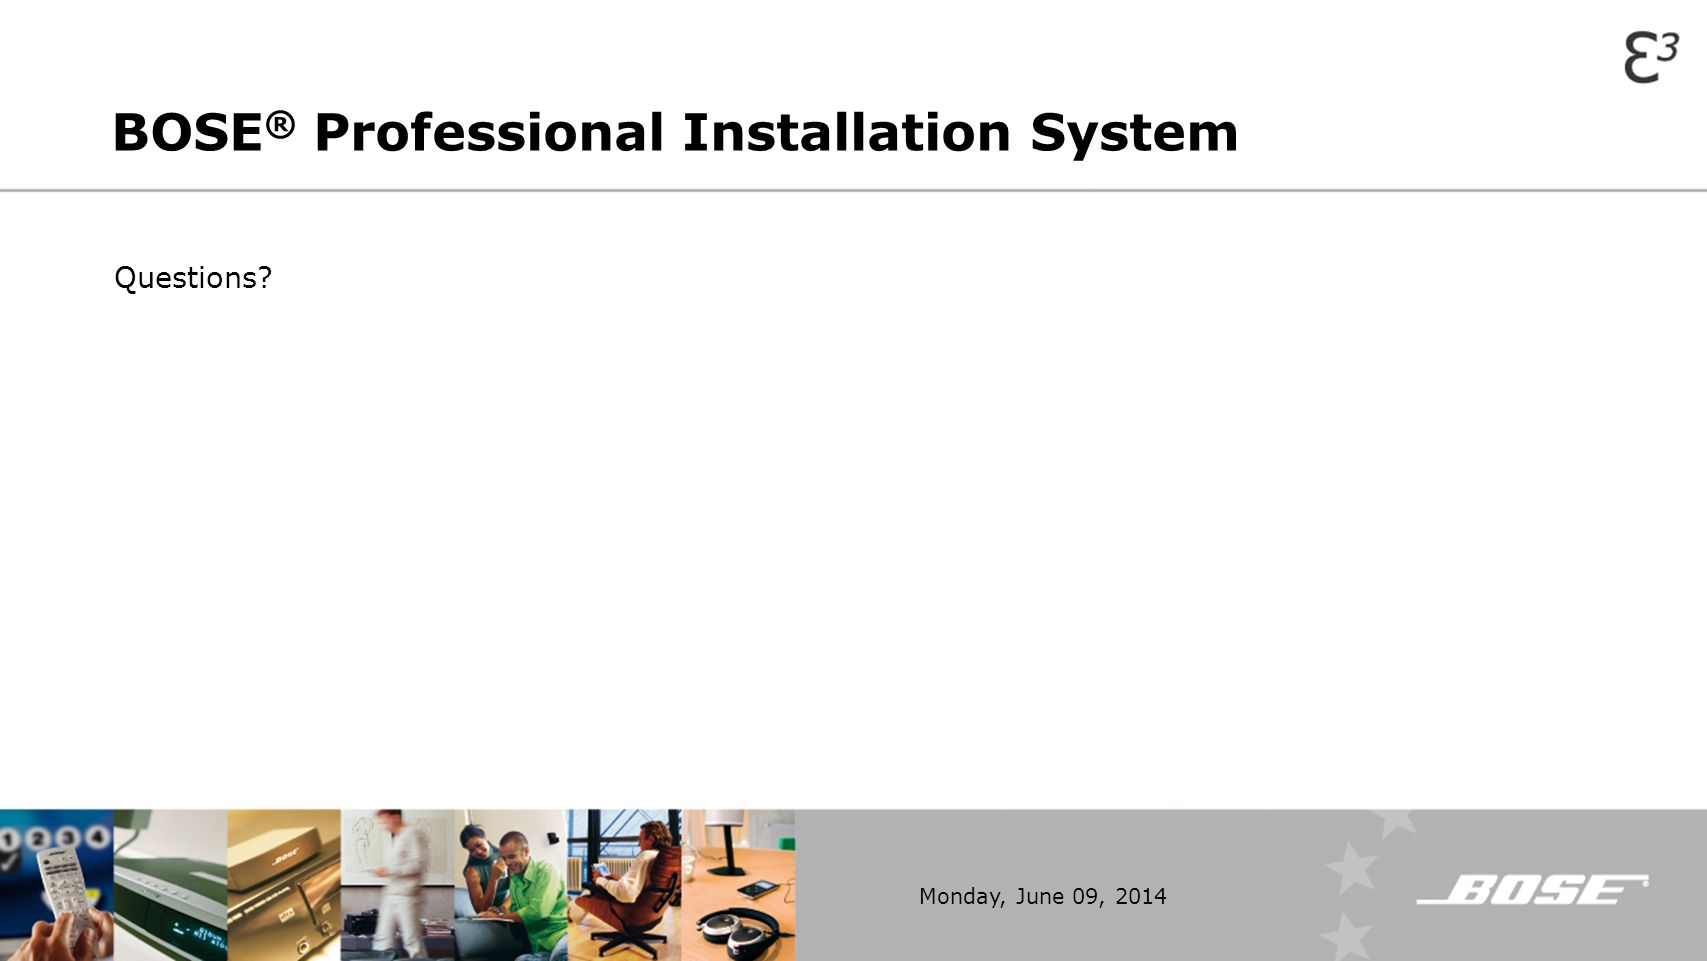 BOSE® Professional Installation System